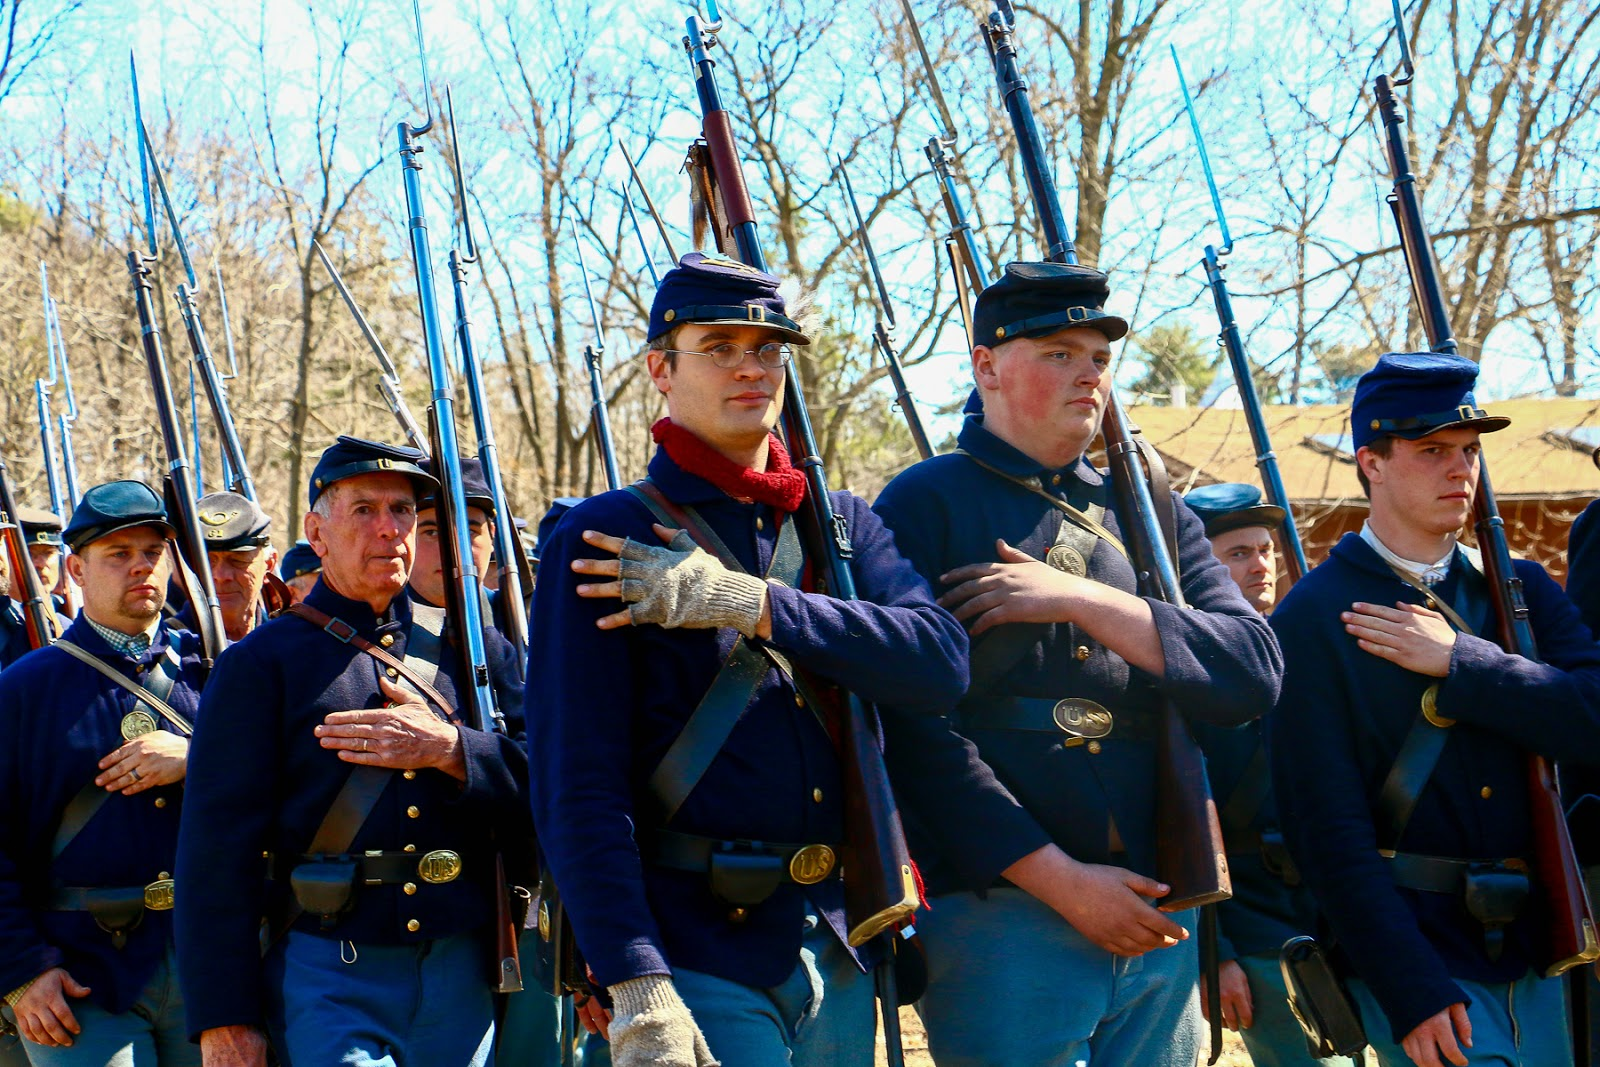 Neshaminy Civil War Reenactment